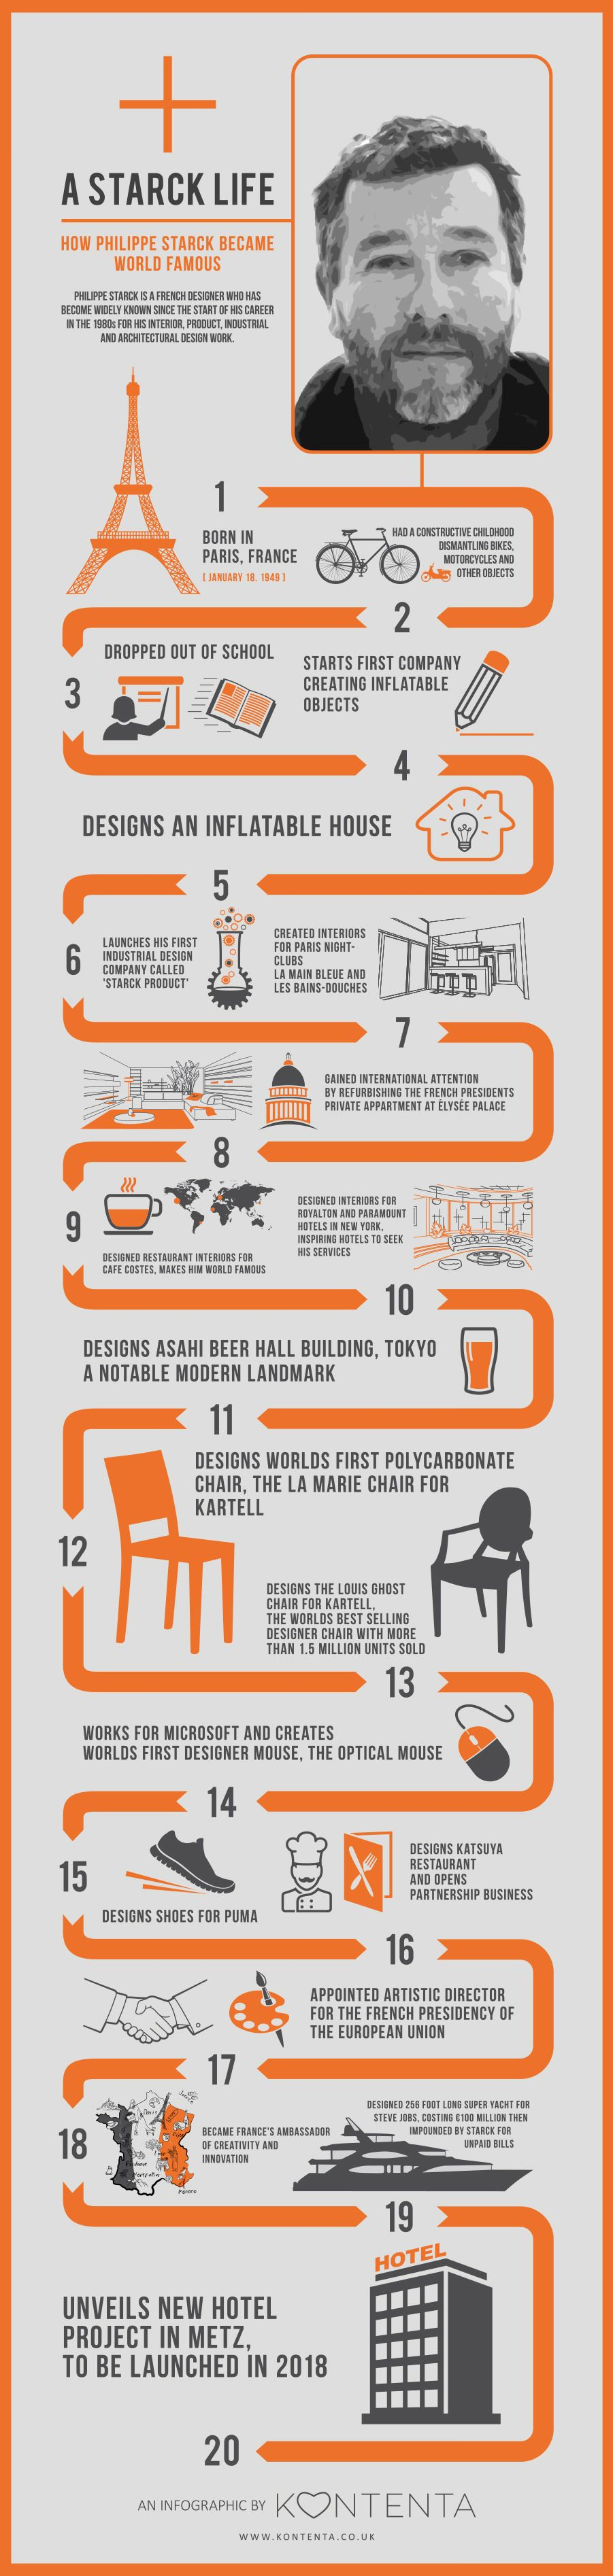 Interior Design Facts 20 facts you didn't know about philippe starck | education